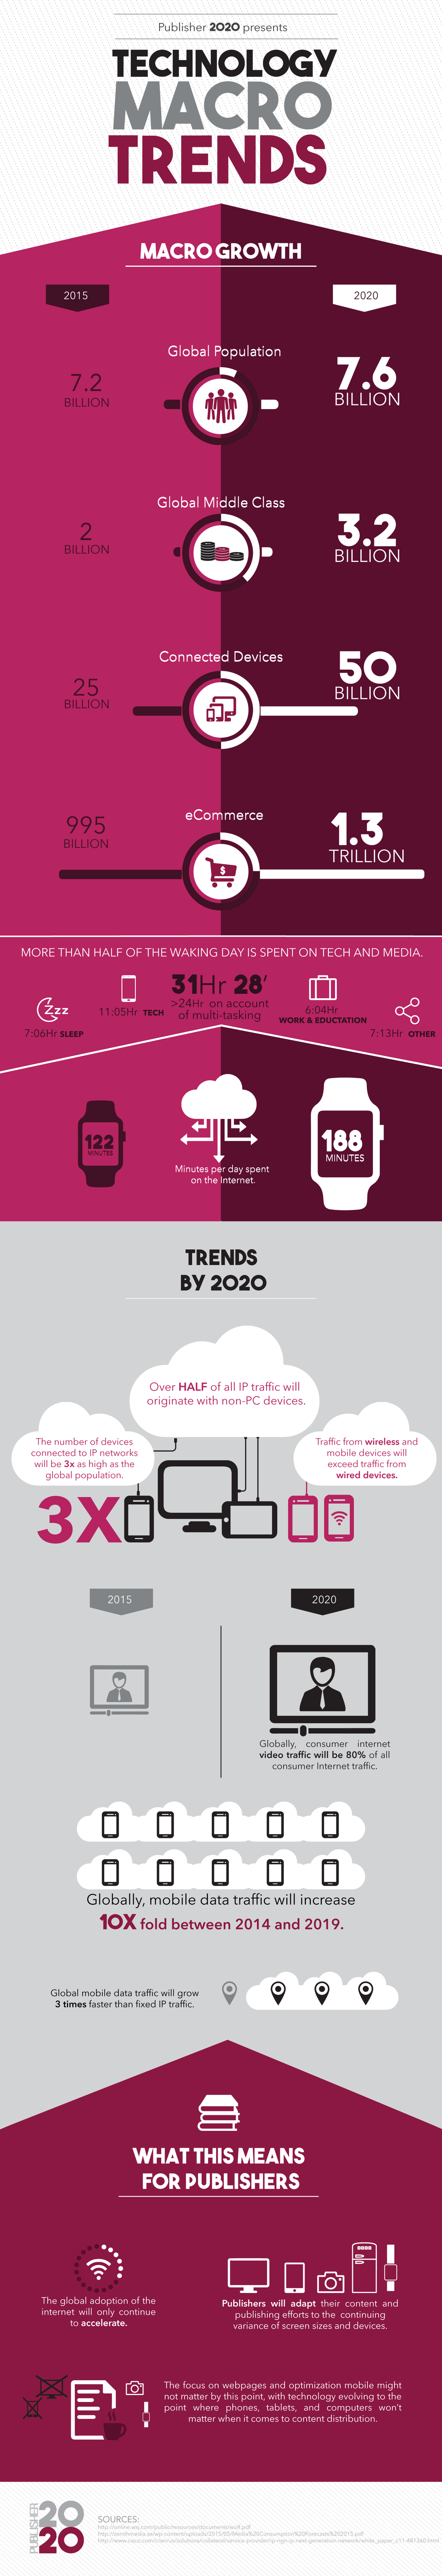 Infographic-Technology-P2020.png